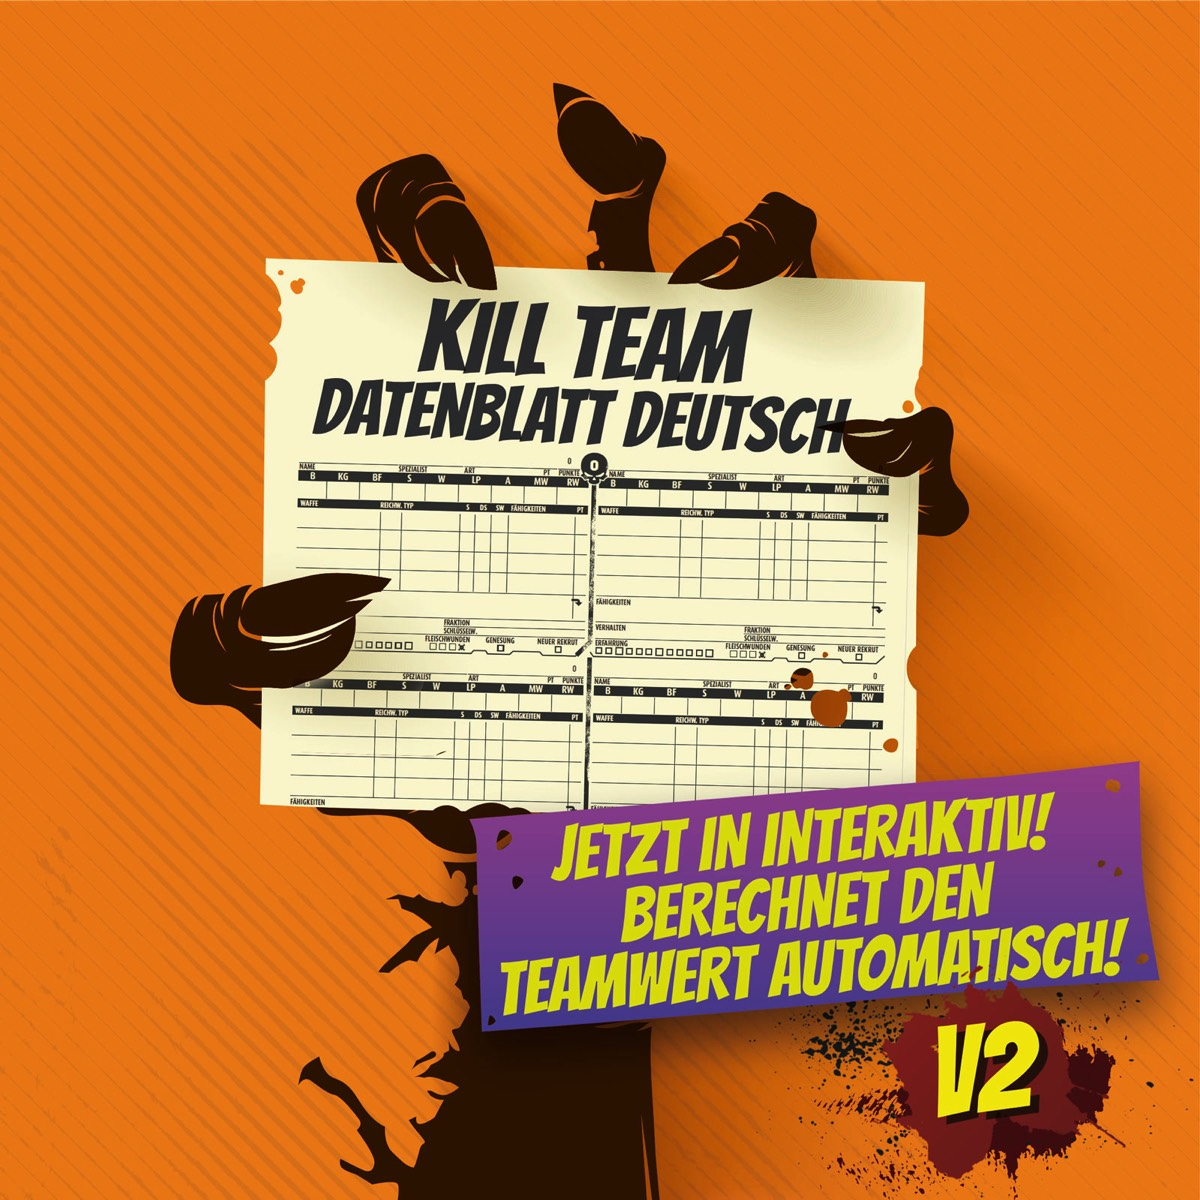 Interaktives Kill Team Datenblatt Deutsch